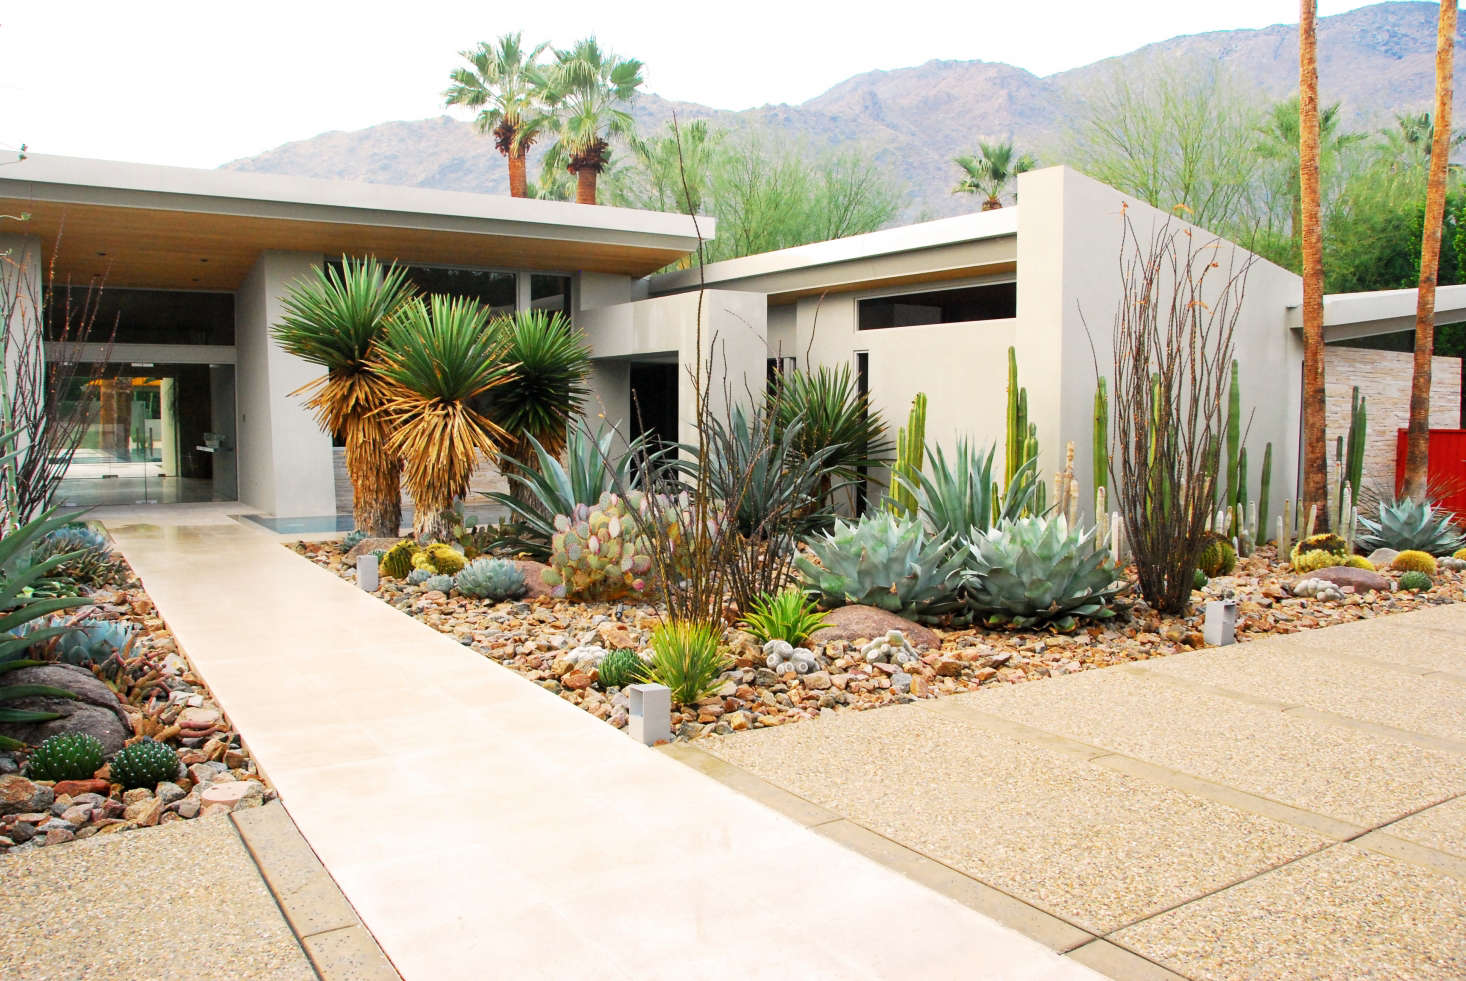 In mid-century gardens, a scattering of shrubs was low maintenance yet  stylish. - Required Reading: The Mid-Century Modern Garden By Ethne Clarke